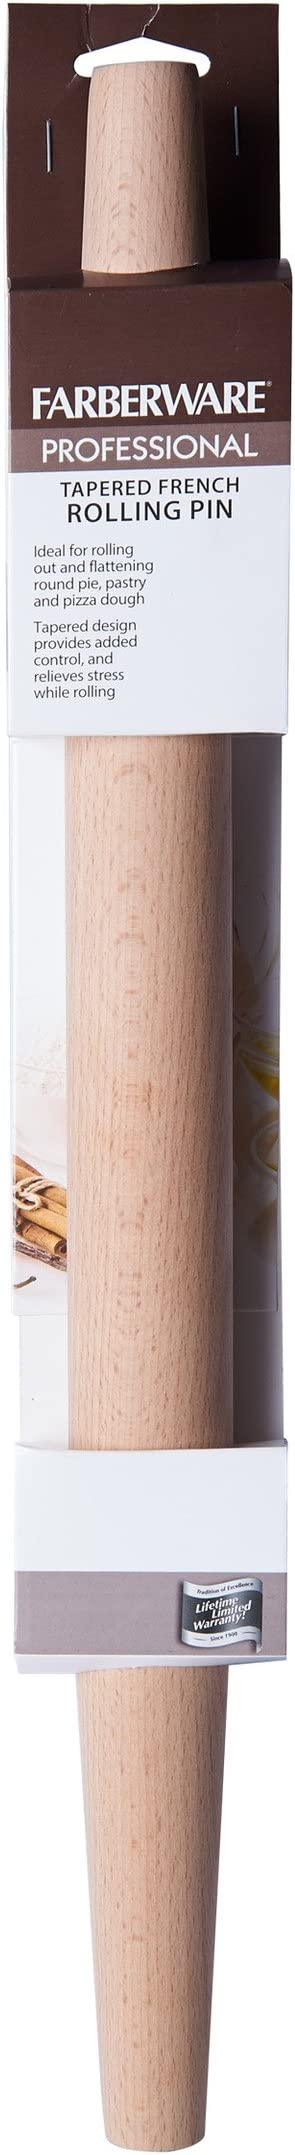 Farberware Professional French Wood Rolling Pin Kitchen Dining